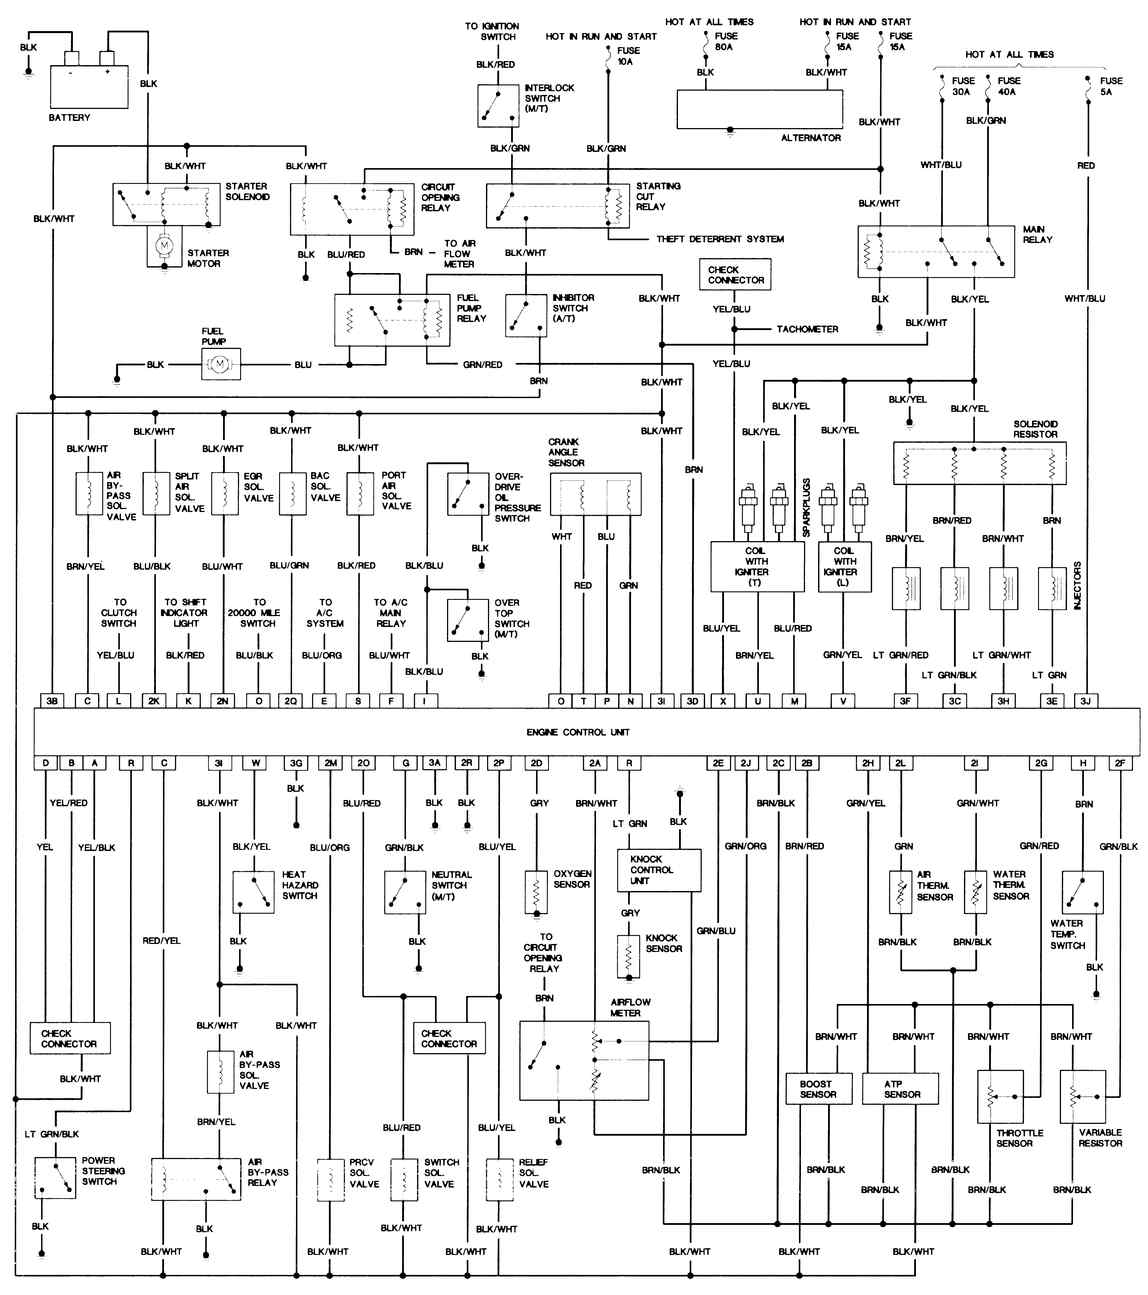 83 Rx7 Engine Wiring Diagram For Professional Fuel Pump 81 Library Rh 8 Skriptoase De Bmw Diagrams Crx